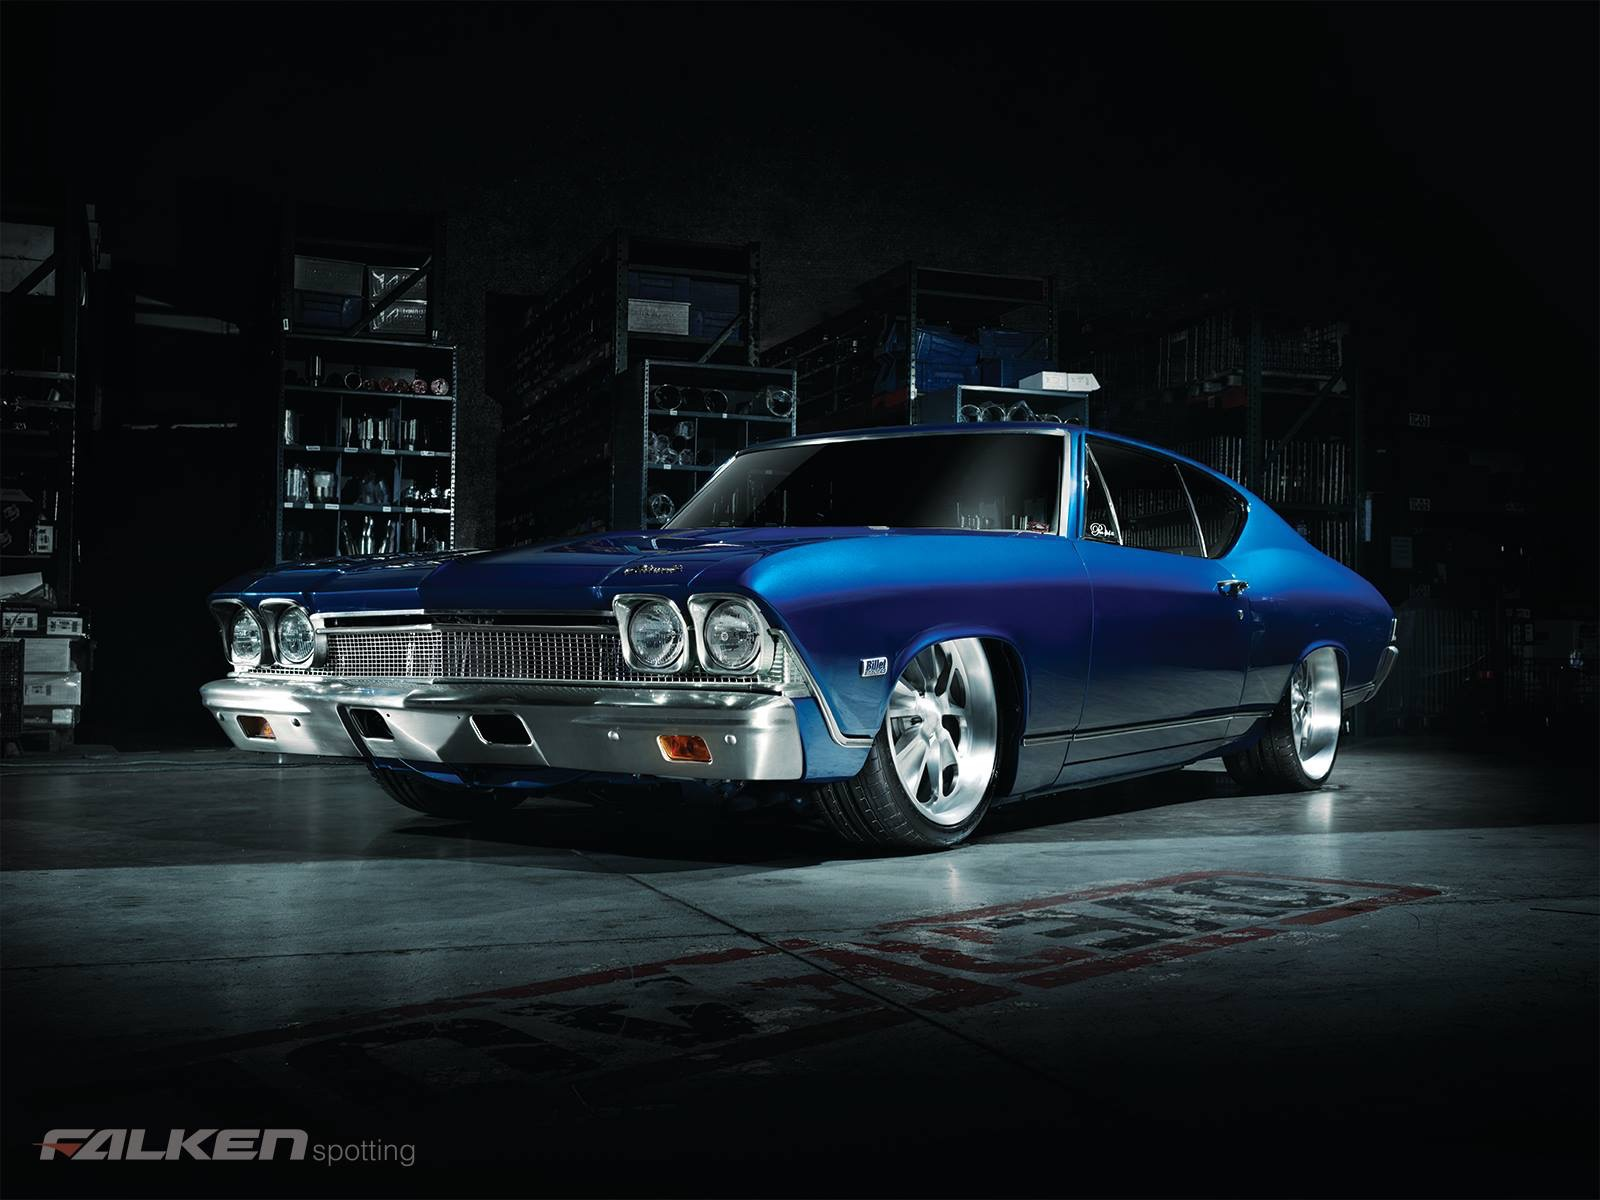 My 68 Chevelle restoration of a 1968 Malibu and pictures from the     My 68 Chevelle blue eyed devil 1968 chevy malibu Falken tires